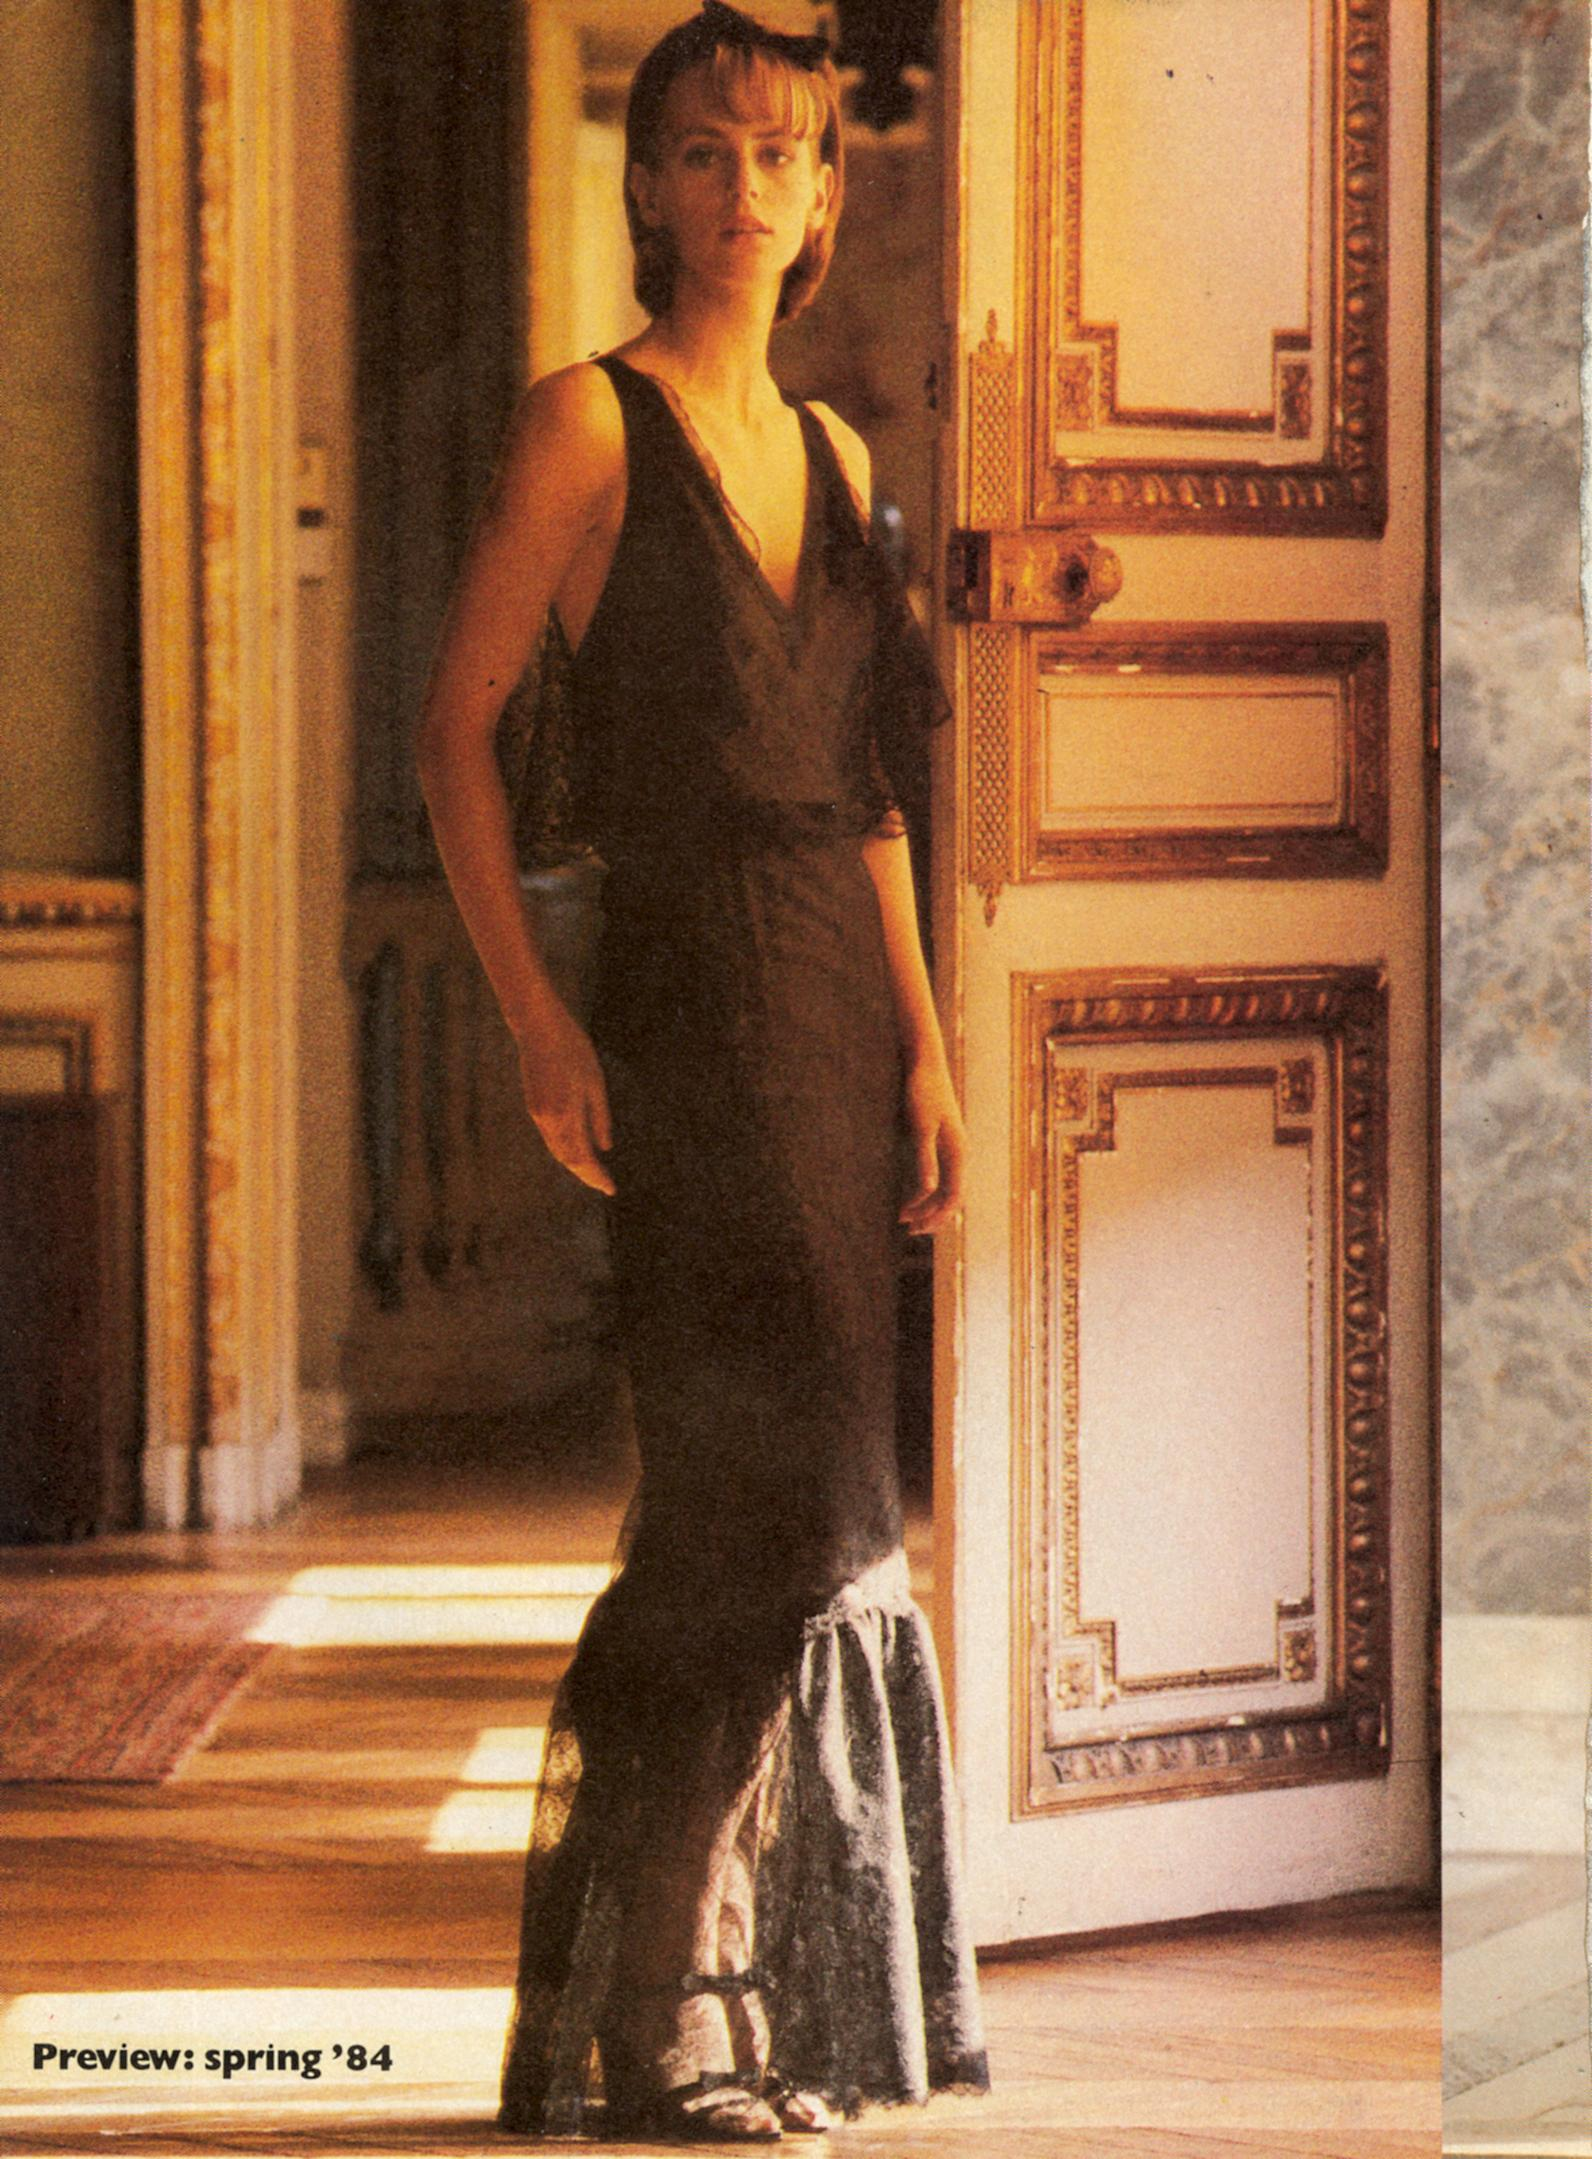 Vogue (US) December 1983 | Spring '84 Ideas 05.jpg